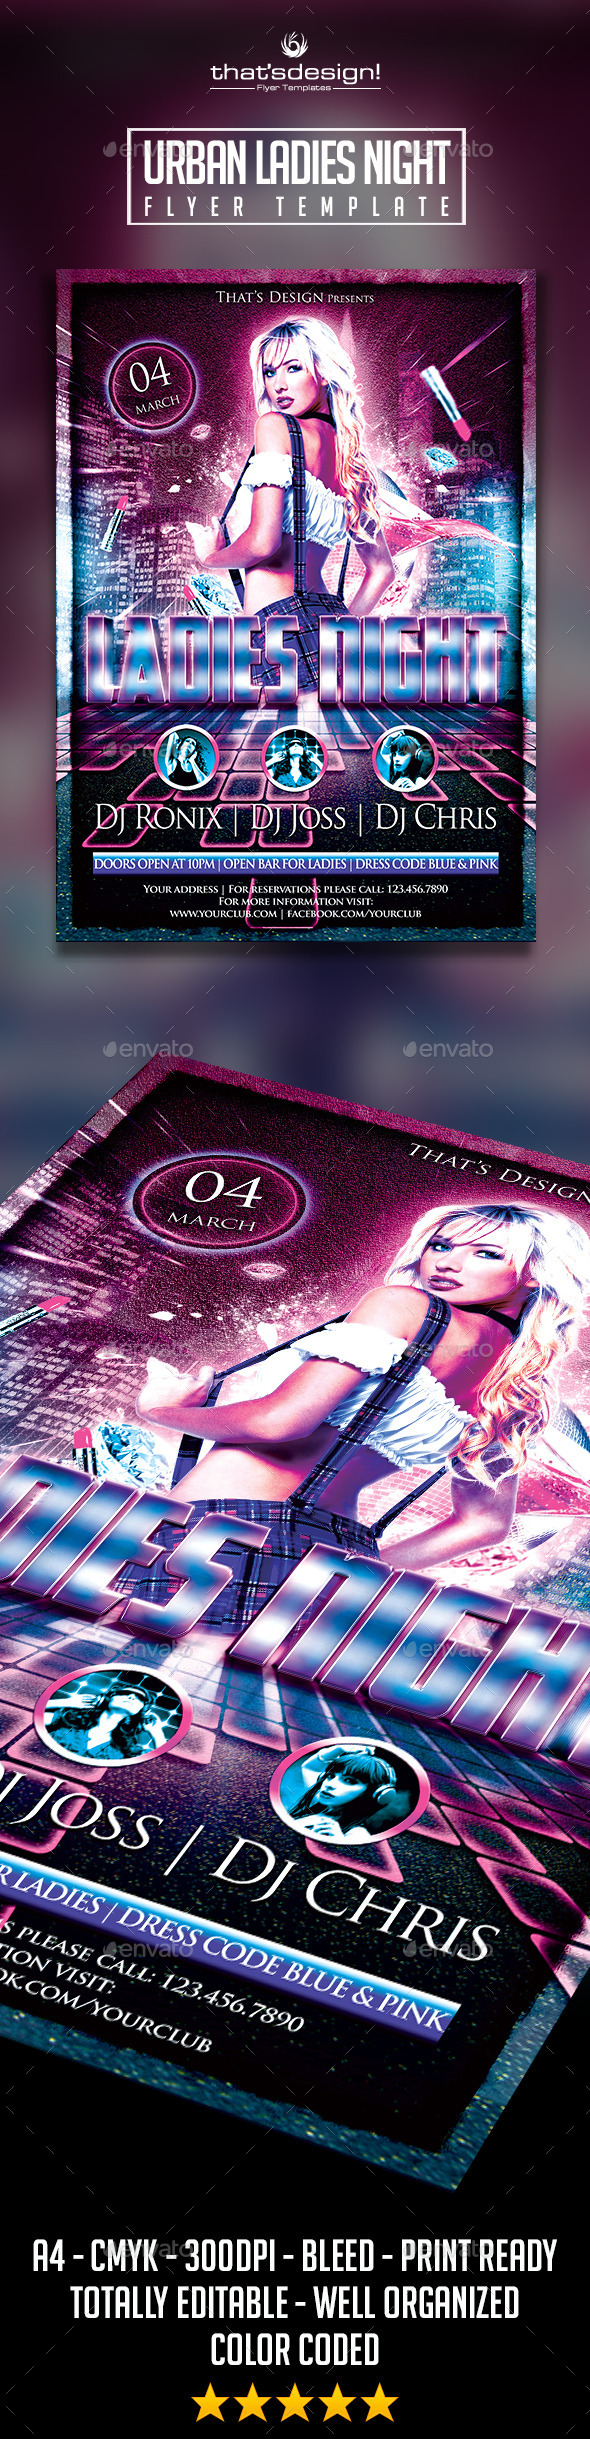 Urban Ladies Night Flyer Template - Print Templates